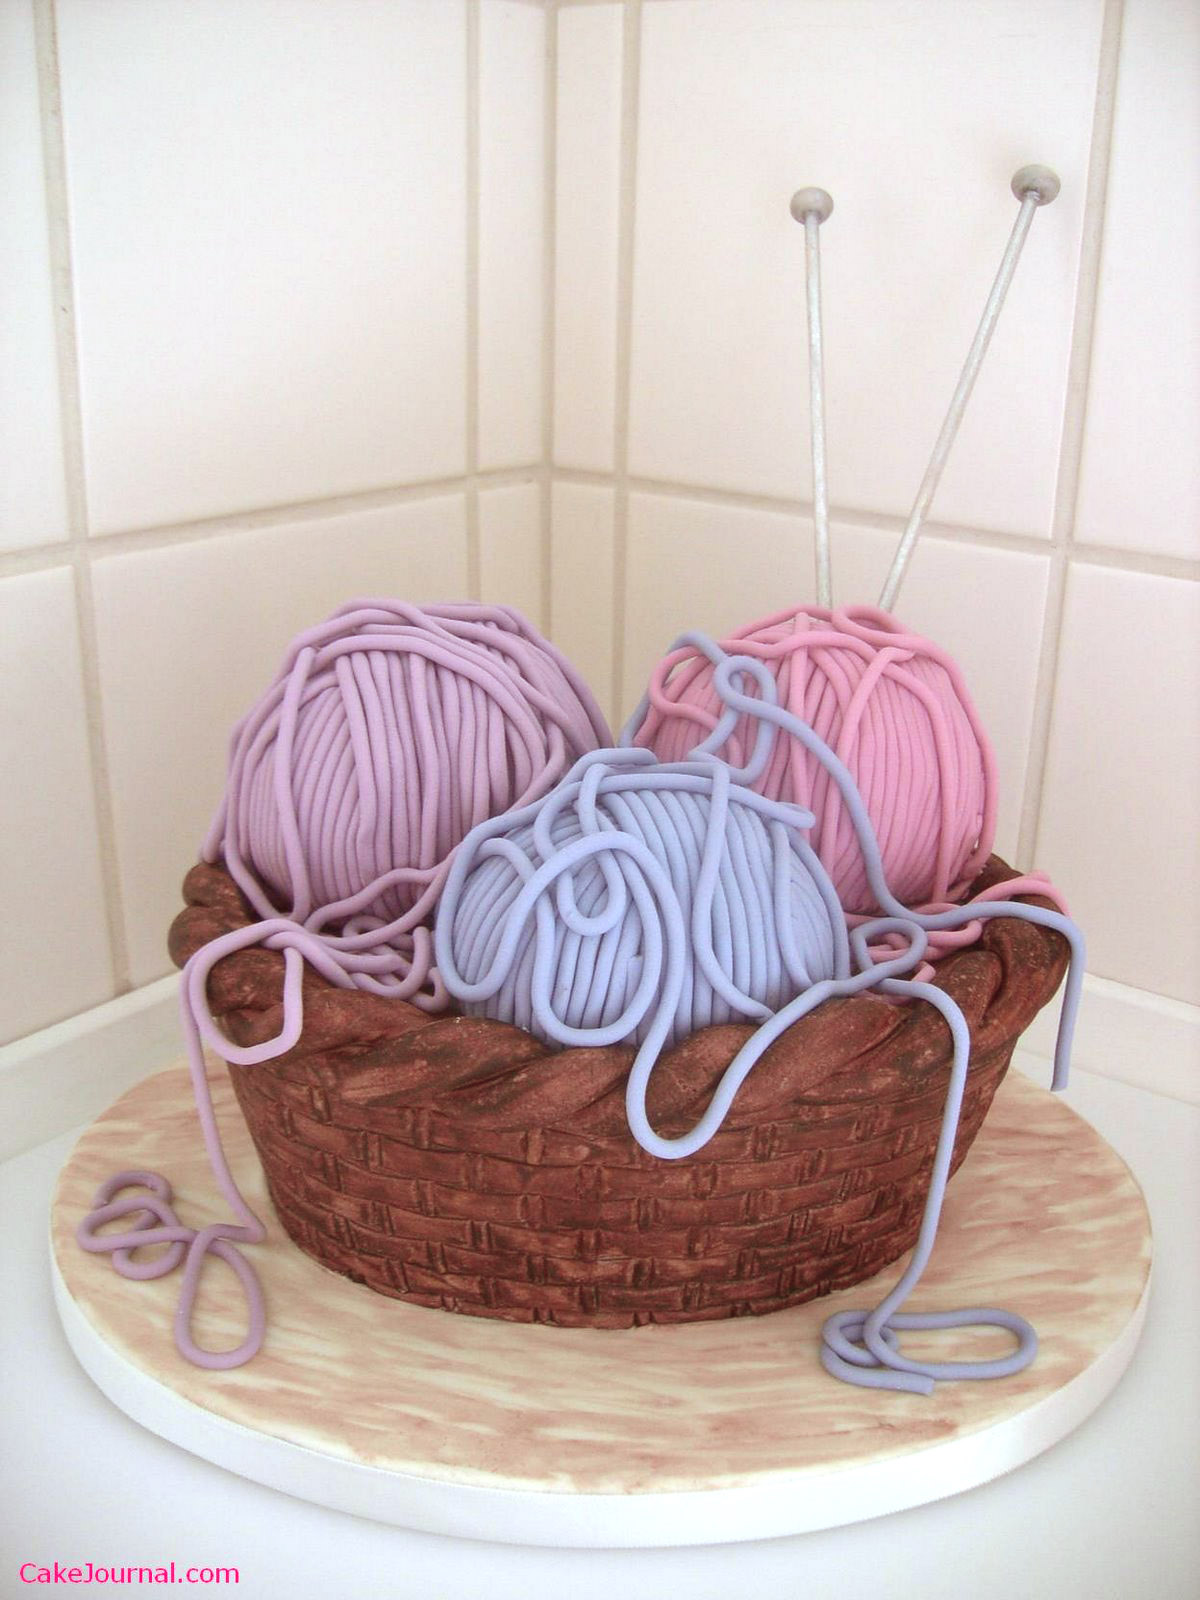 Knitting Cake Ideas : What not to knit happy birthday